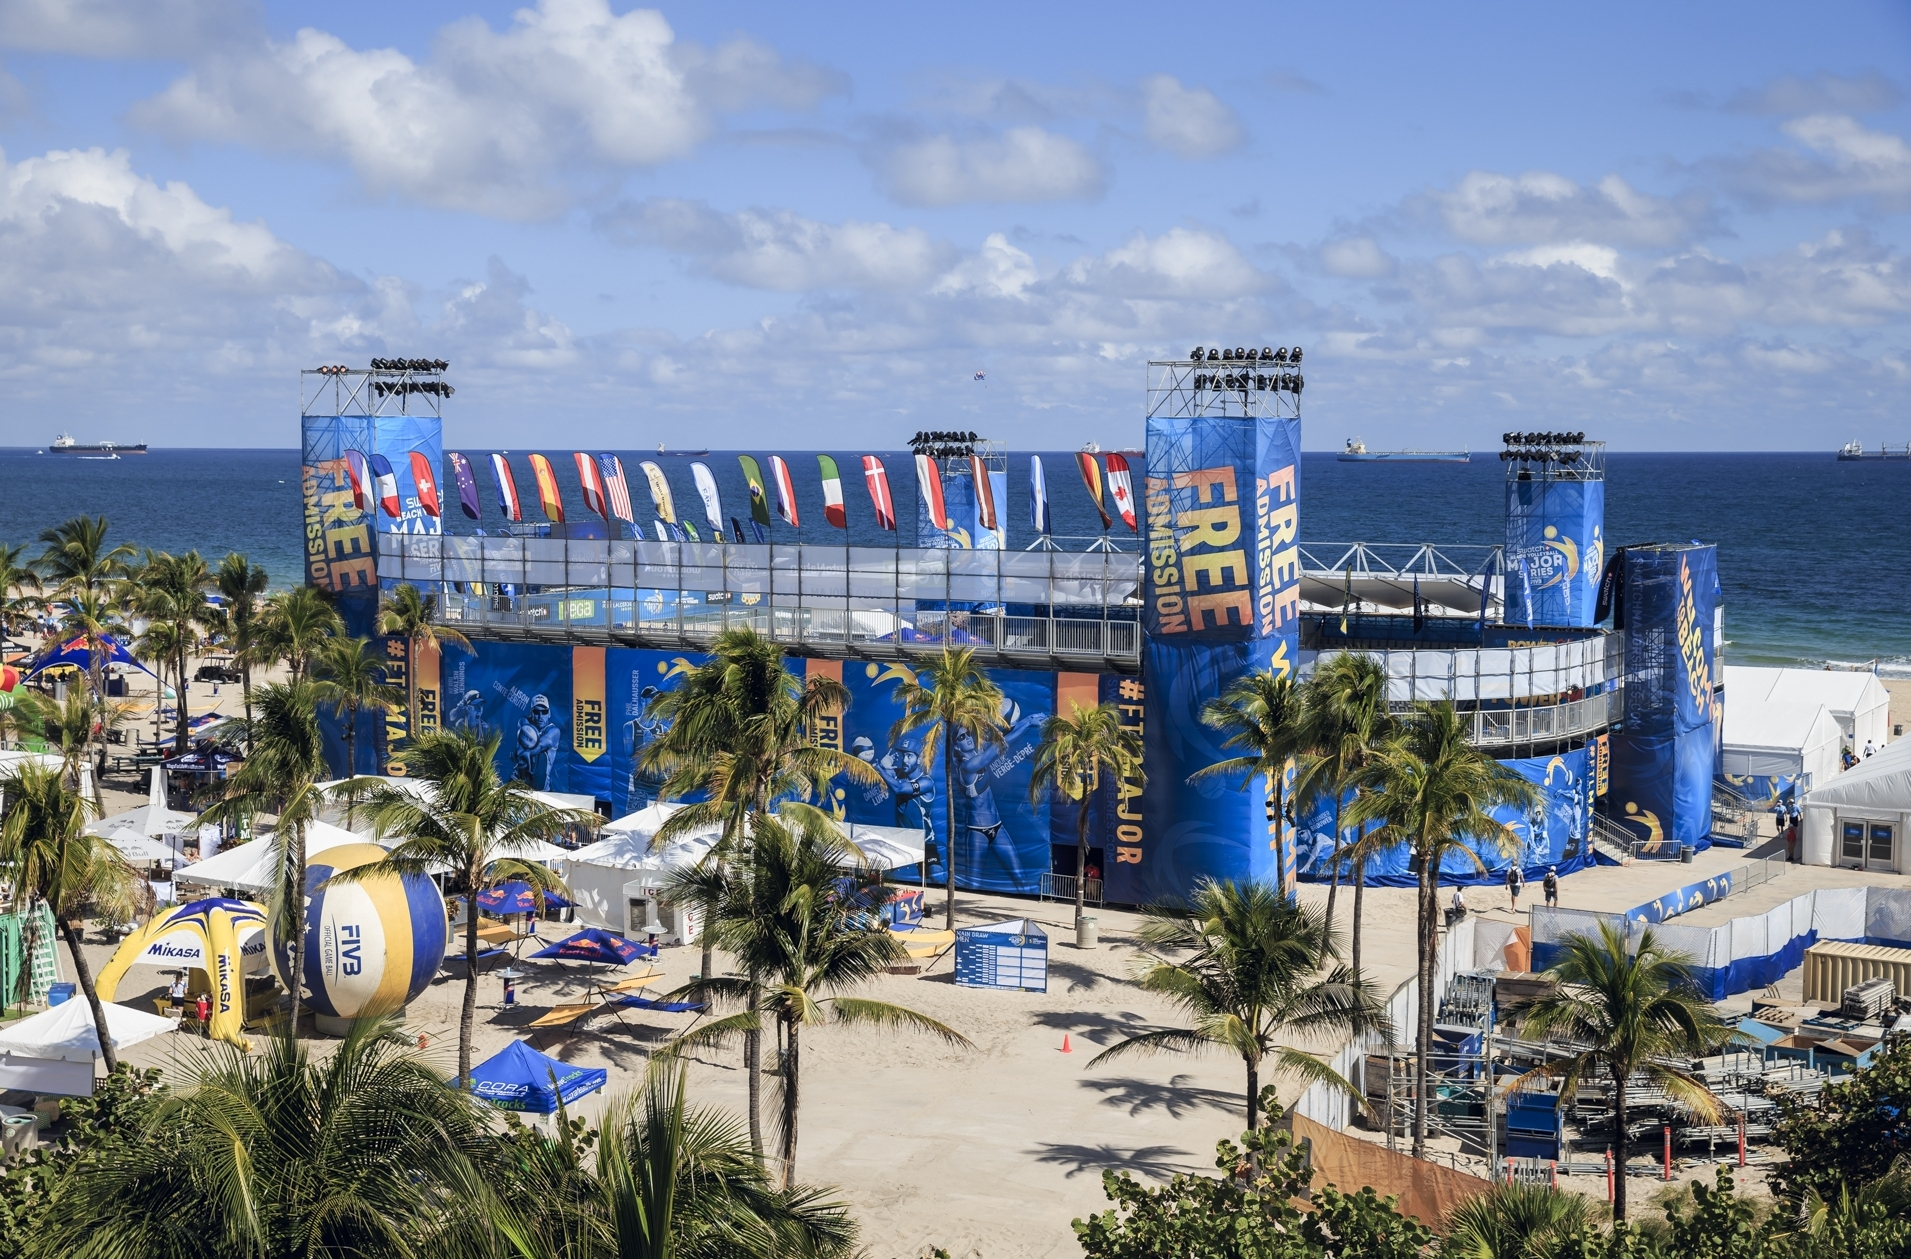 Bring on the pool play at the Fort Lauderdale Major! Photocredit: Martin Steinthaler.